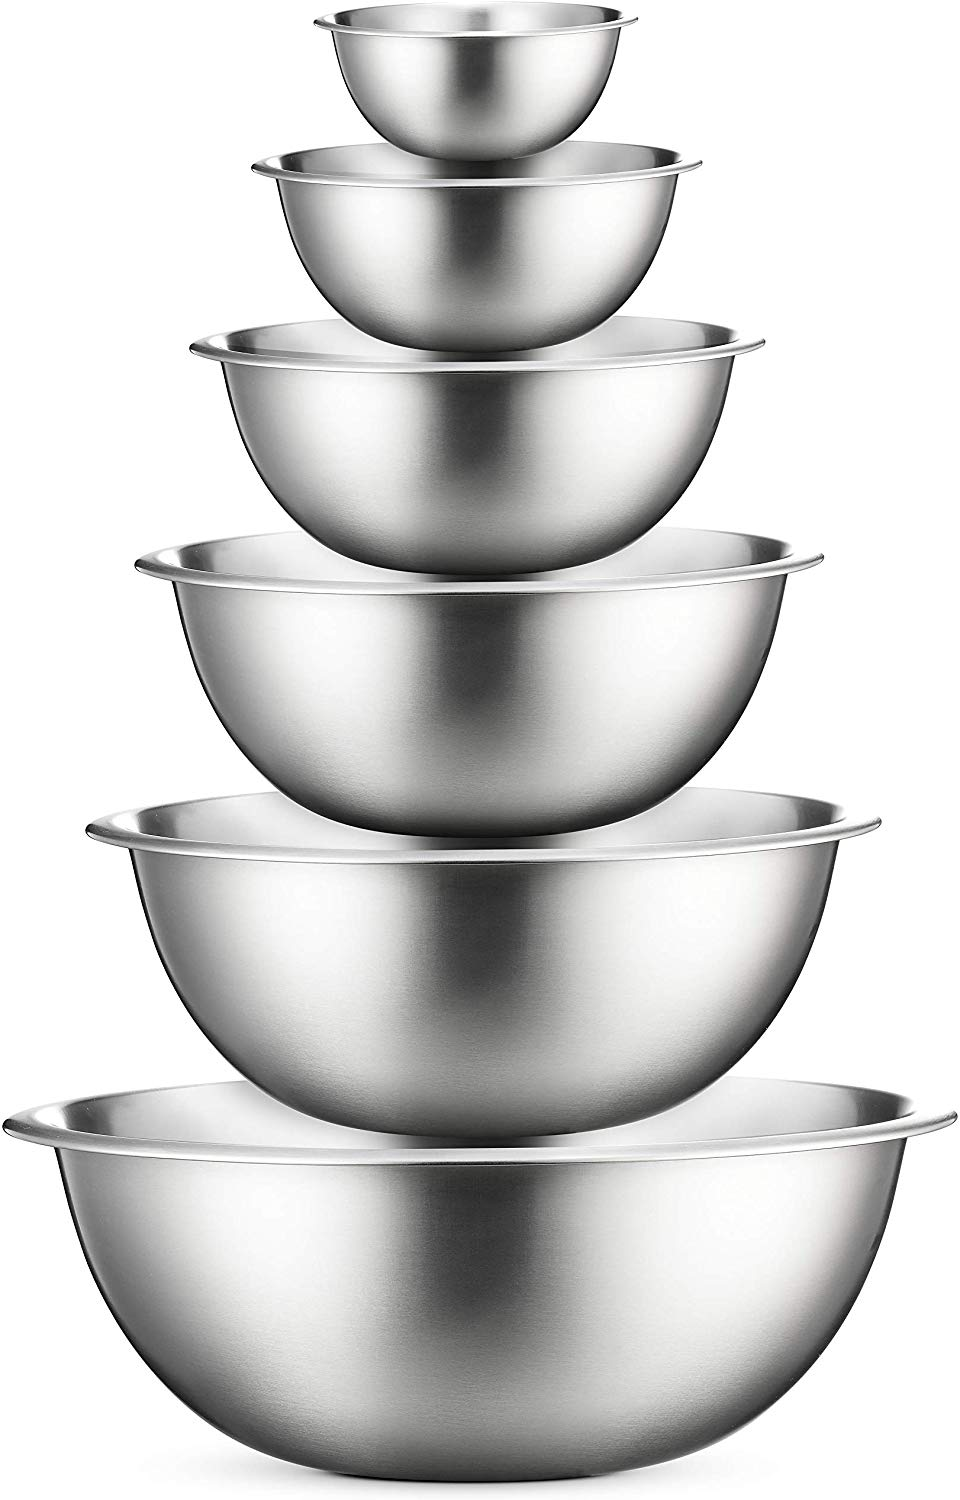 Finedine stainless steel mixing bowls